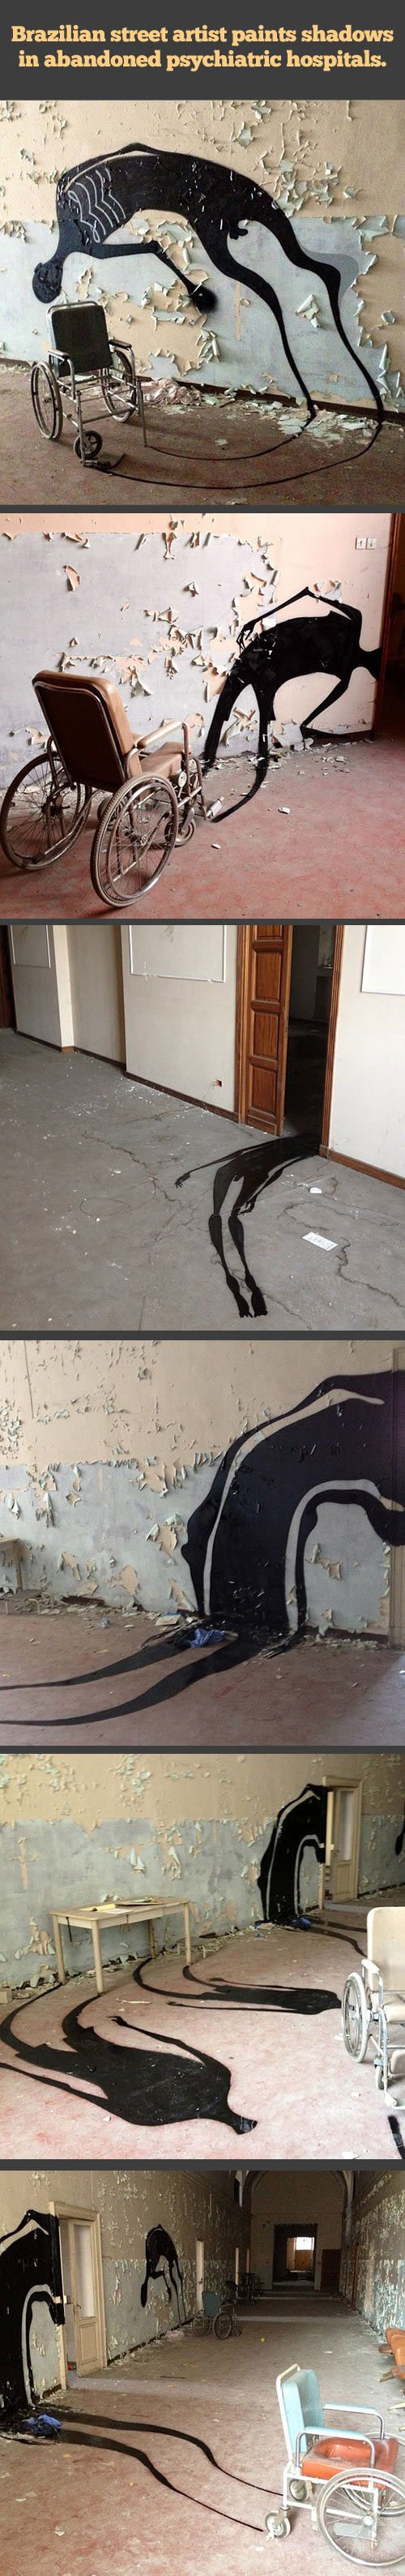 Shadows in abandoned psychiatric hospitals…